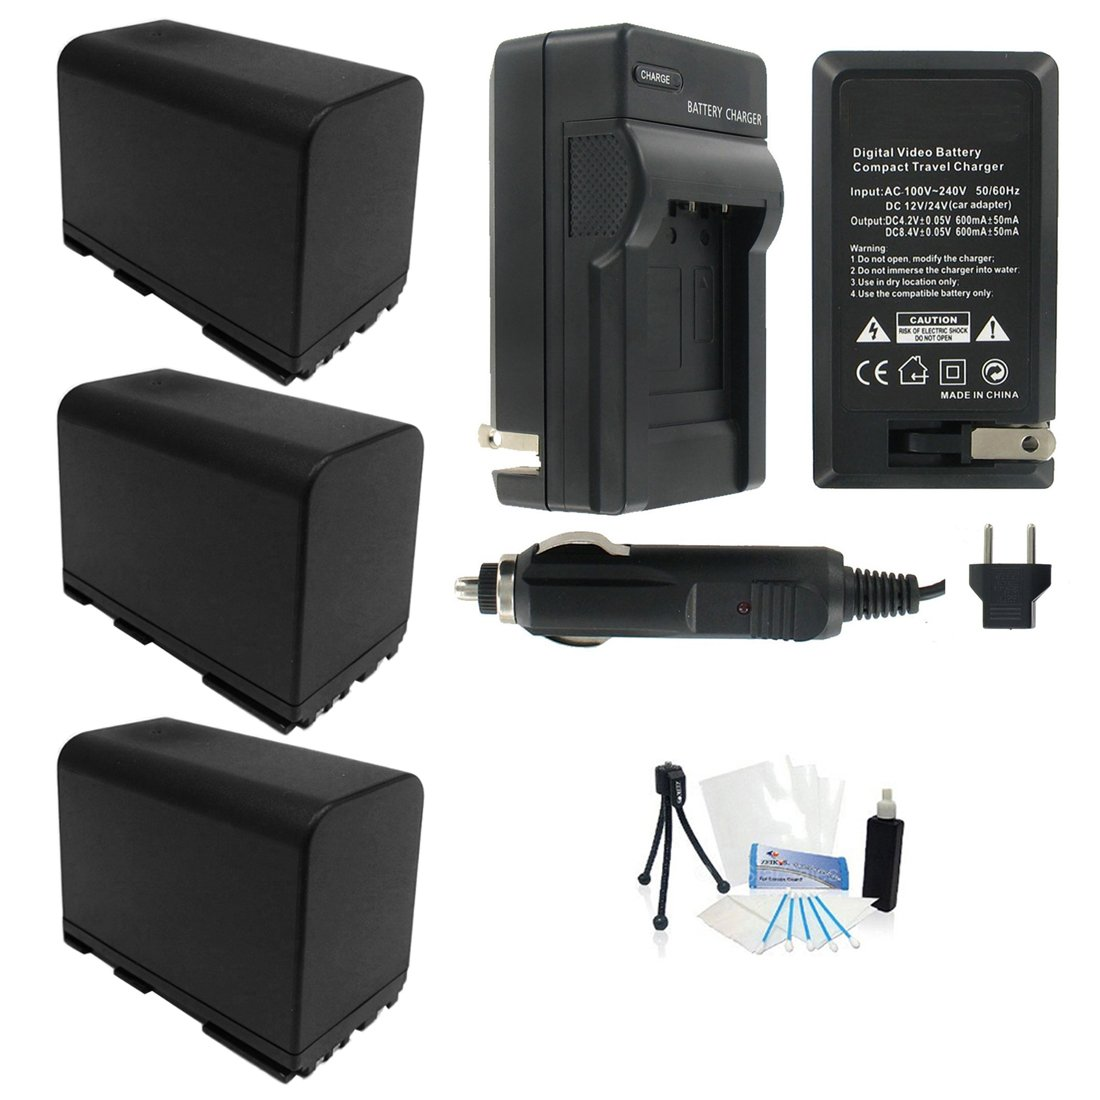 UltraPro 3-Pack of BP-975 High-Capacity Replacement Batteries with Rapid Travel Charger for Select Canon Digital Cameras - UltraPro Bundle Includes: Camera Cleaning Kit, Camera Screen Protector, Mini Travel Tripod